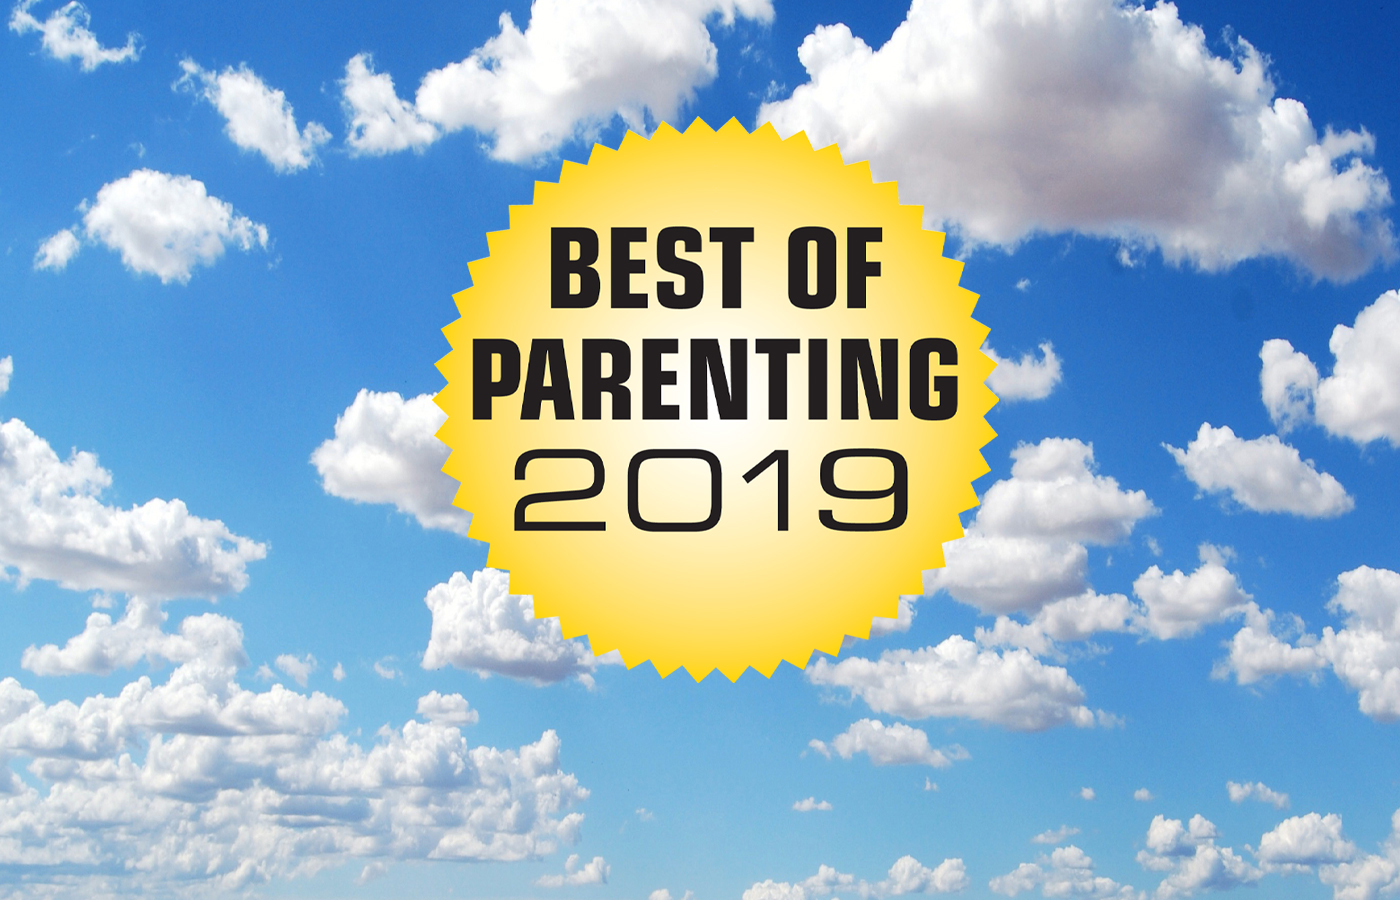 VOTE for the BEST OF PARENTING by AUG. 31!